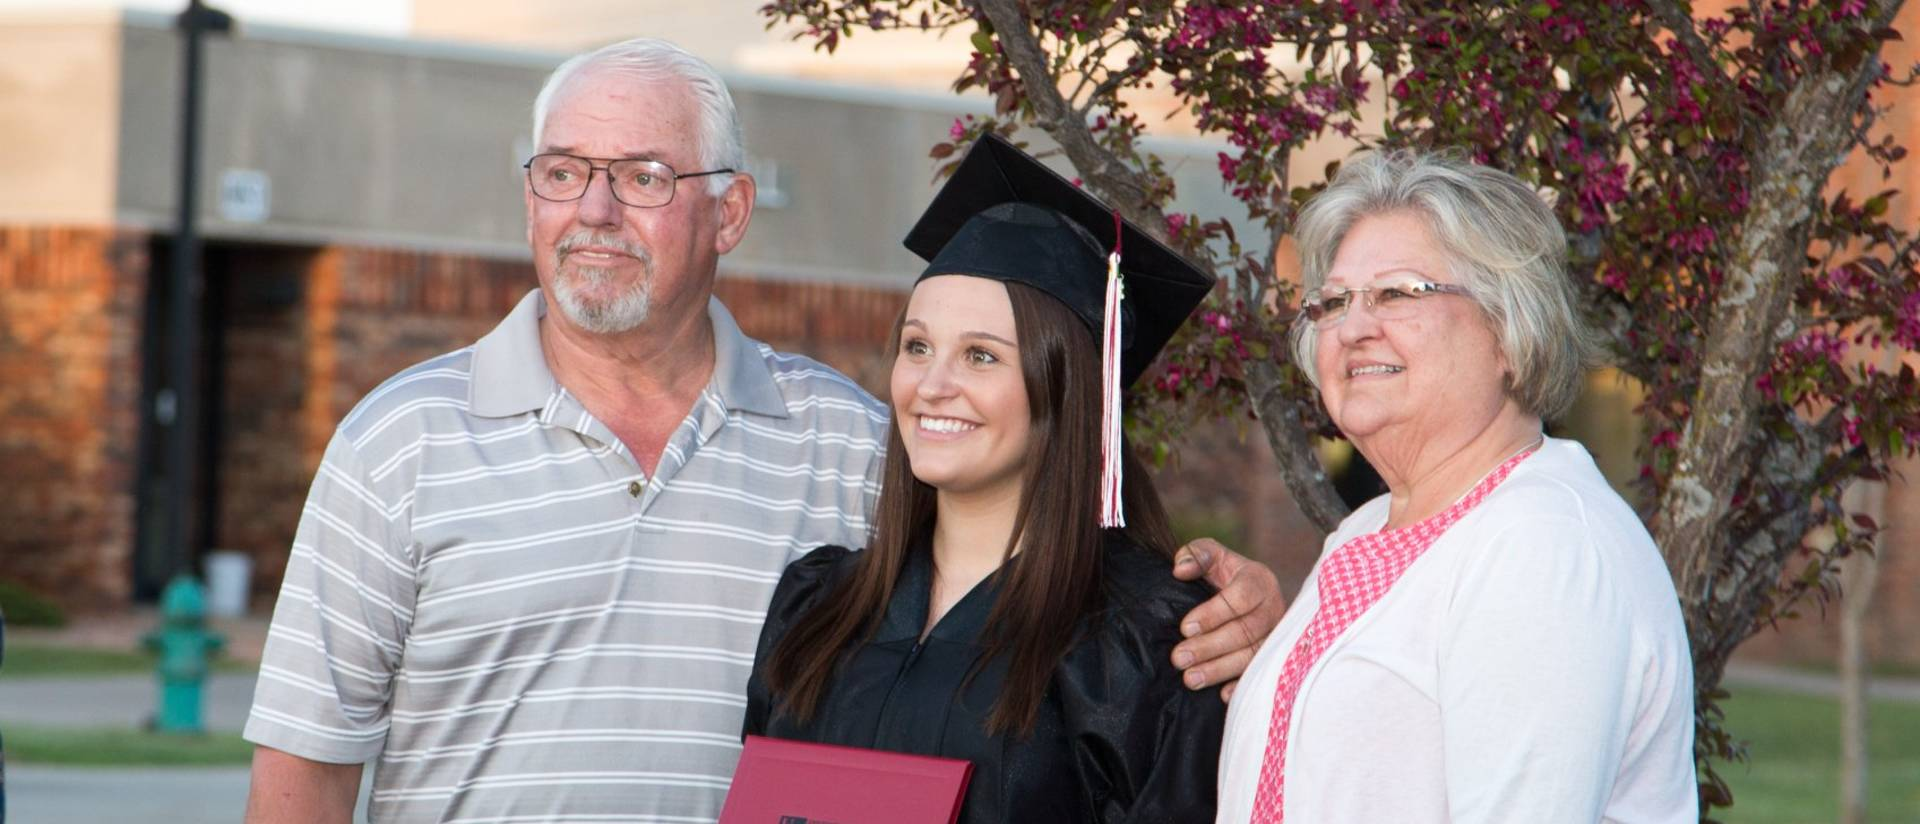 Barron County graduate with her parents at commencement